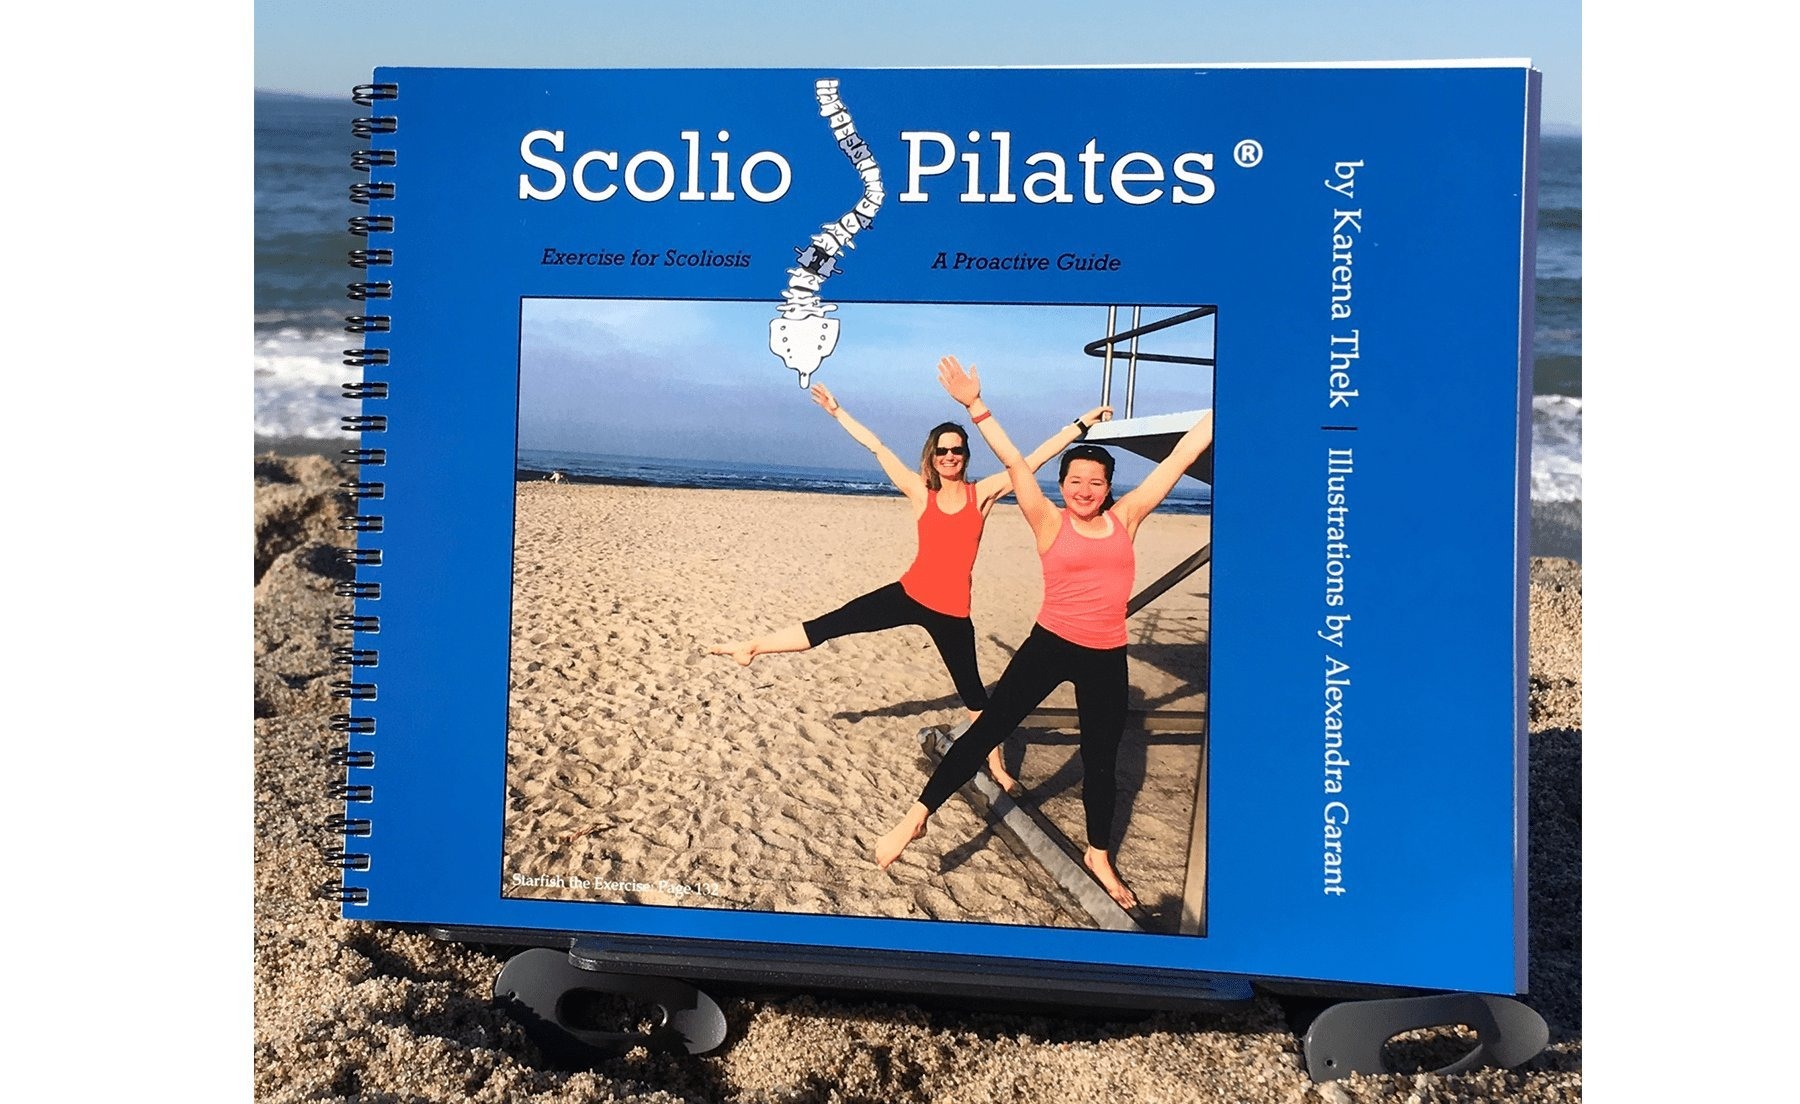 Scolio pilates exercise for scoliosis the step by step exercise scolio pilates exercise for scoliosis the step by step exercise guide for professionals and their clients karena thek lineback 9780615453040 fandeluxe Images